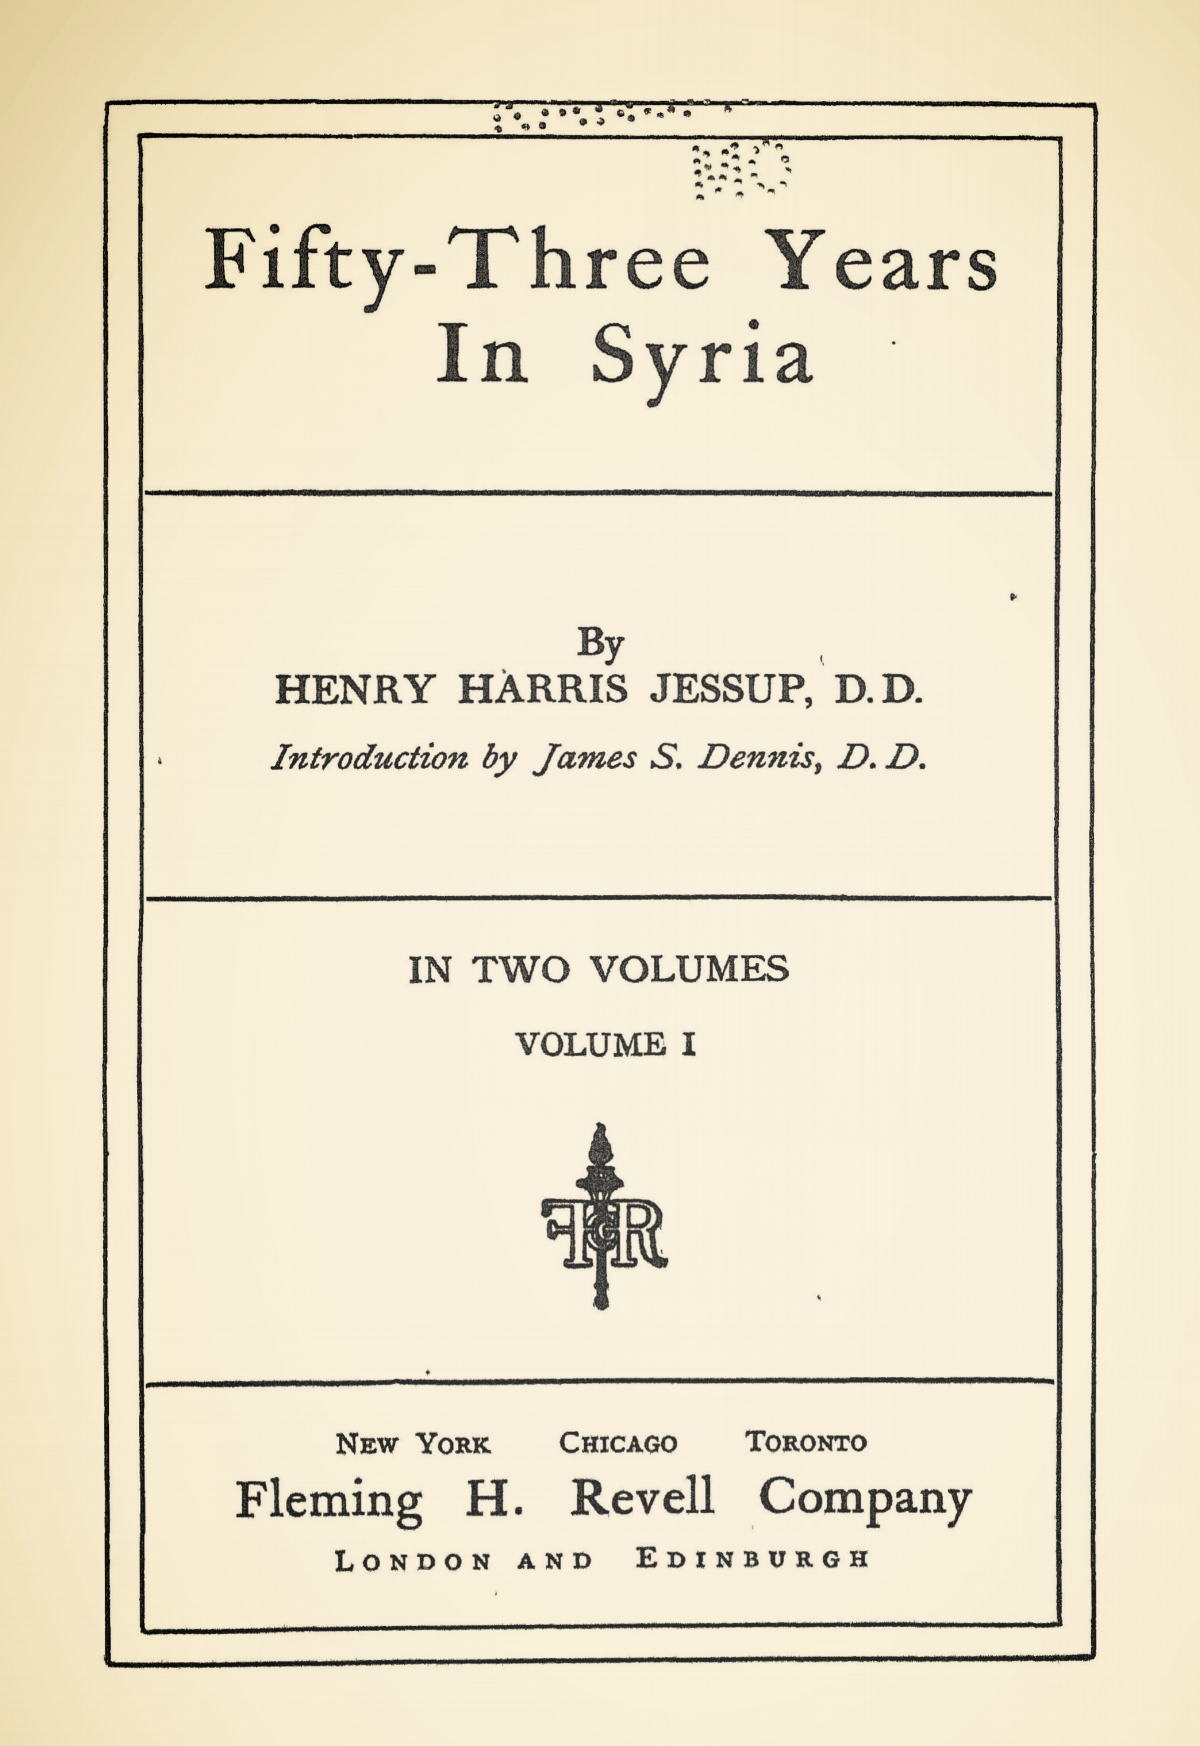 Jessup, Henry Harris, Fifty-Three Years in Syria, Vol. 1 Title Page.jpg